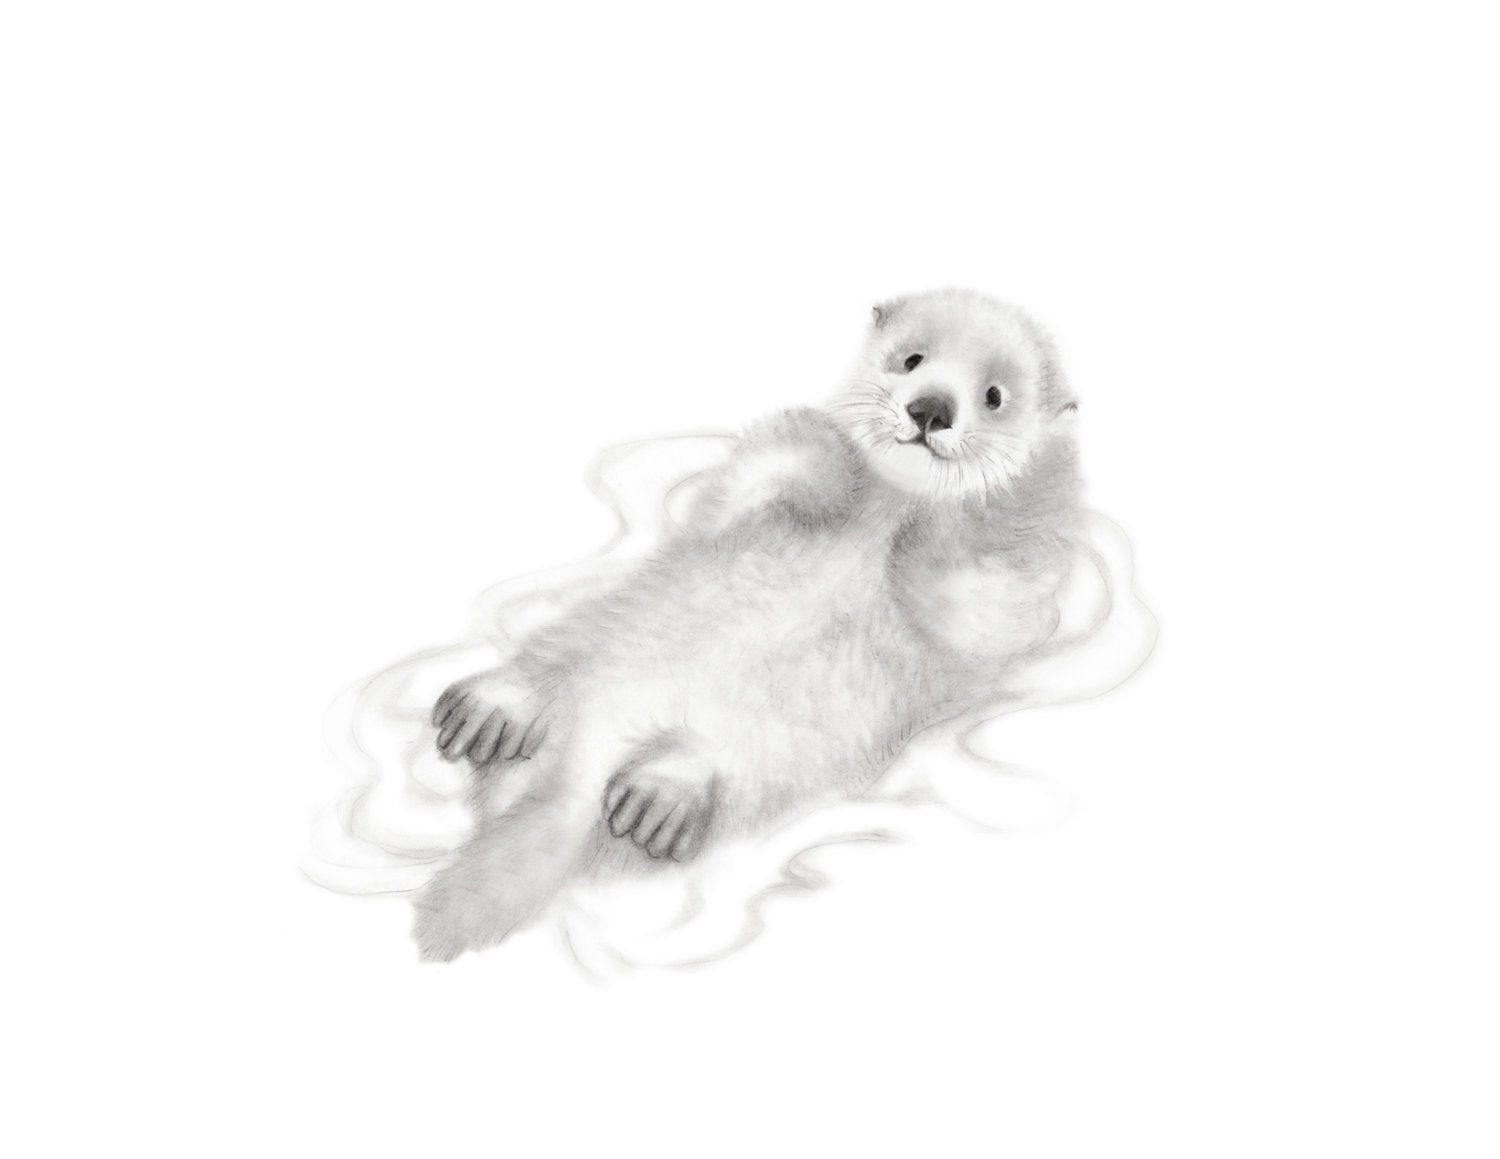 Otter baby sea otter pencil drawing gender neutral baby zoom jeuxipadfo Choice Image